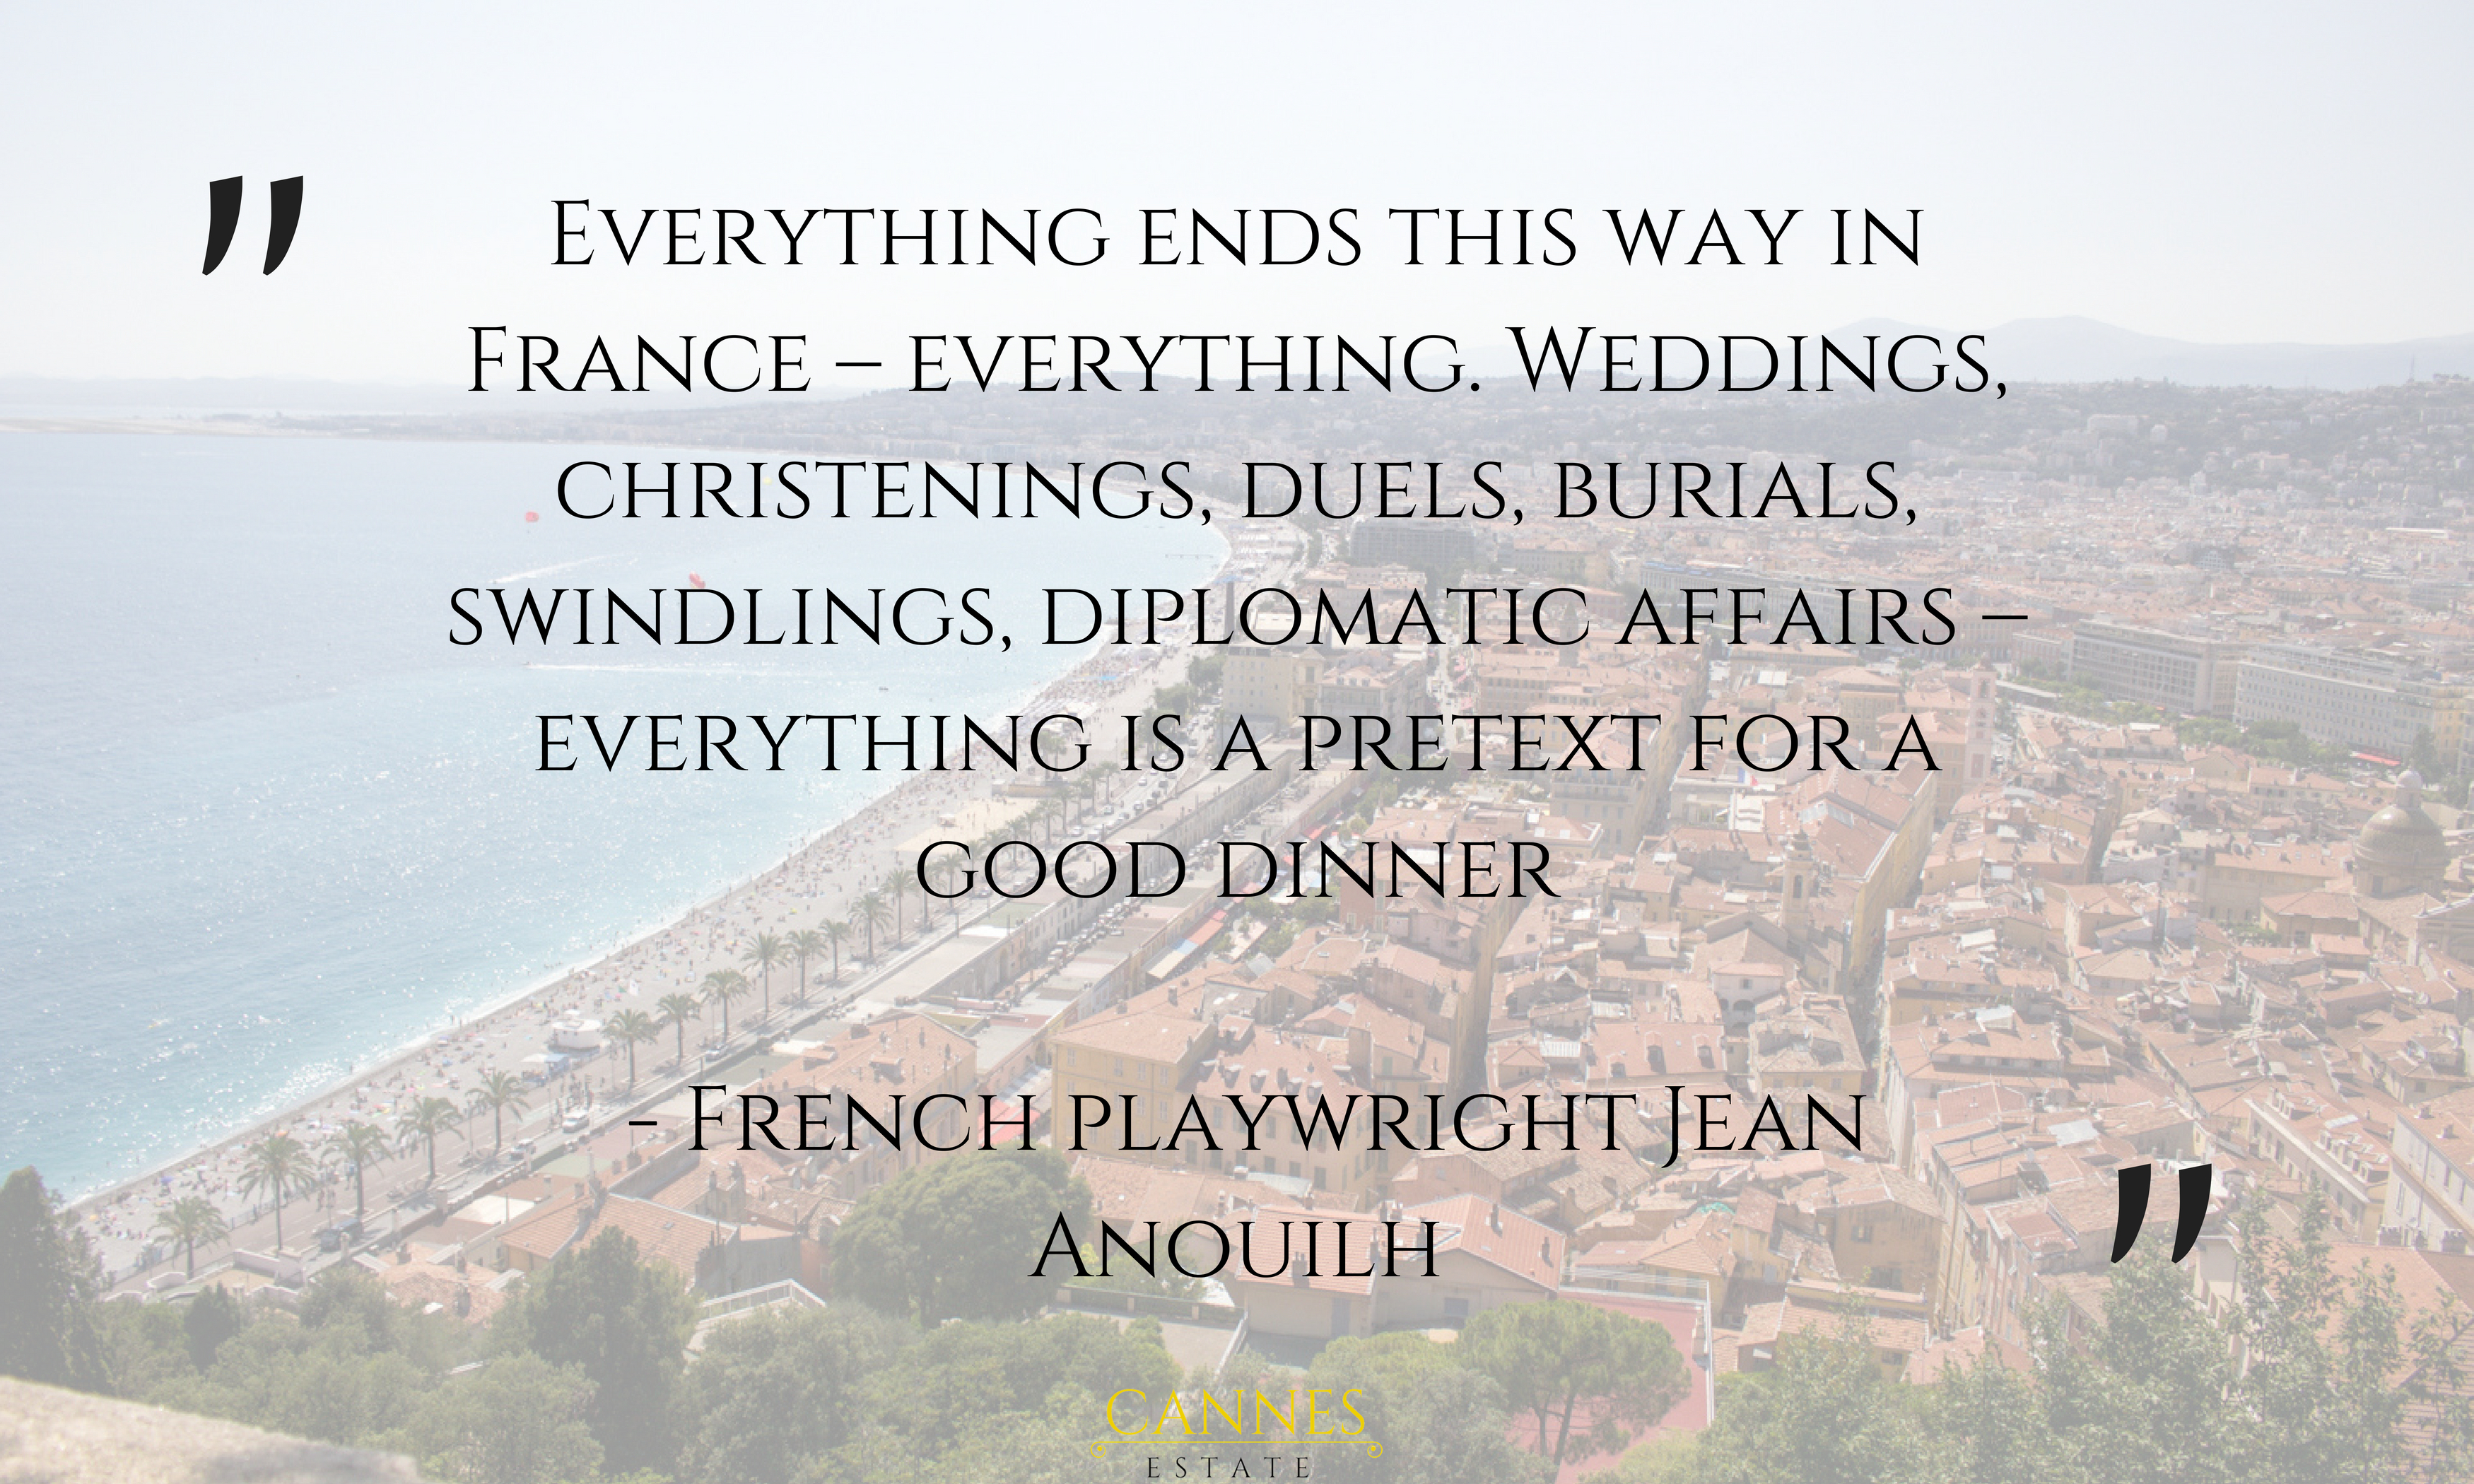 French Quotes | Top Most Interesting French Riviera Quotes Free Images Cannes Estate